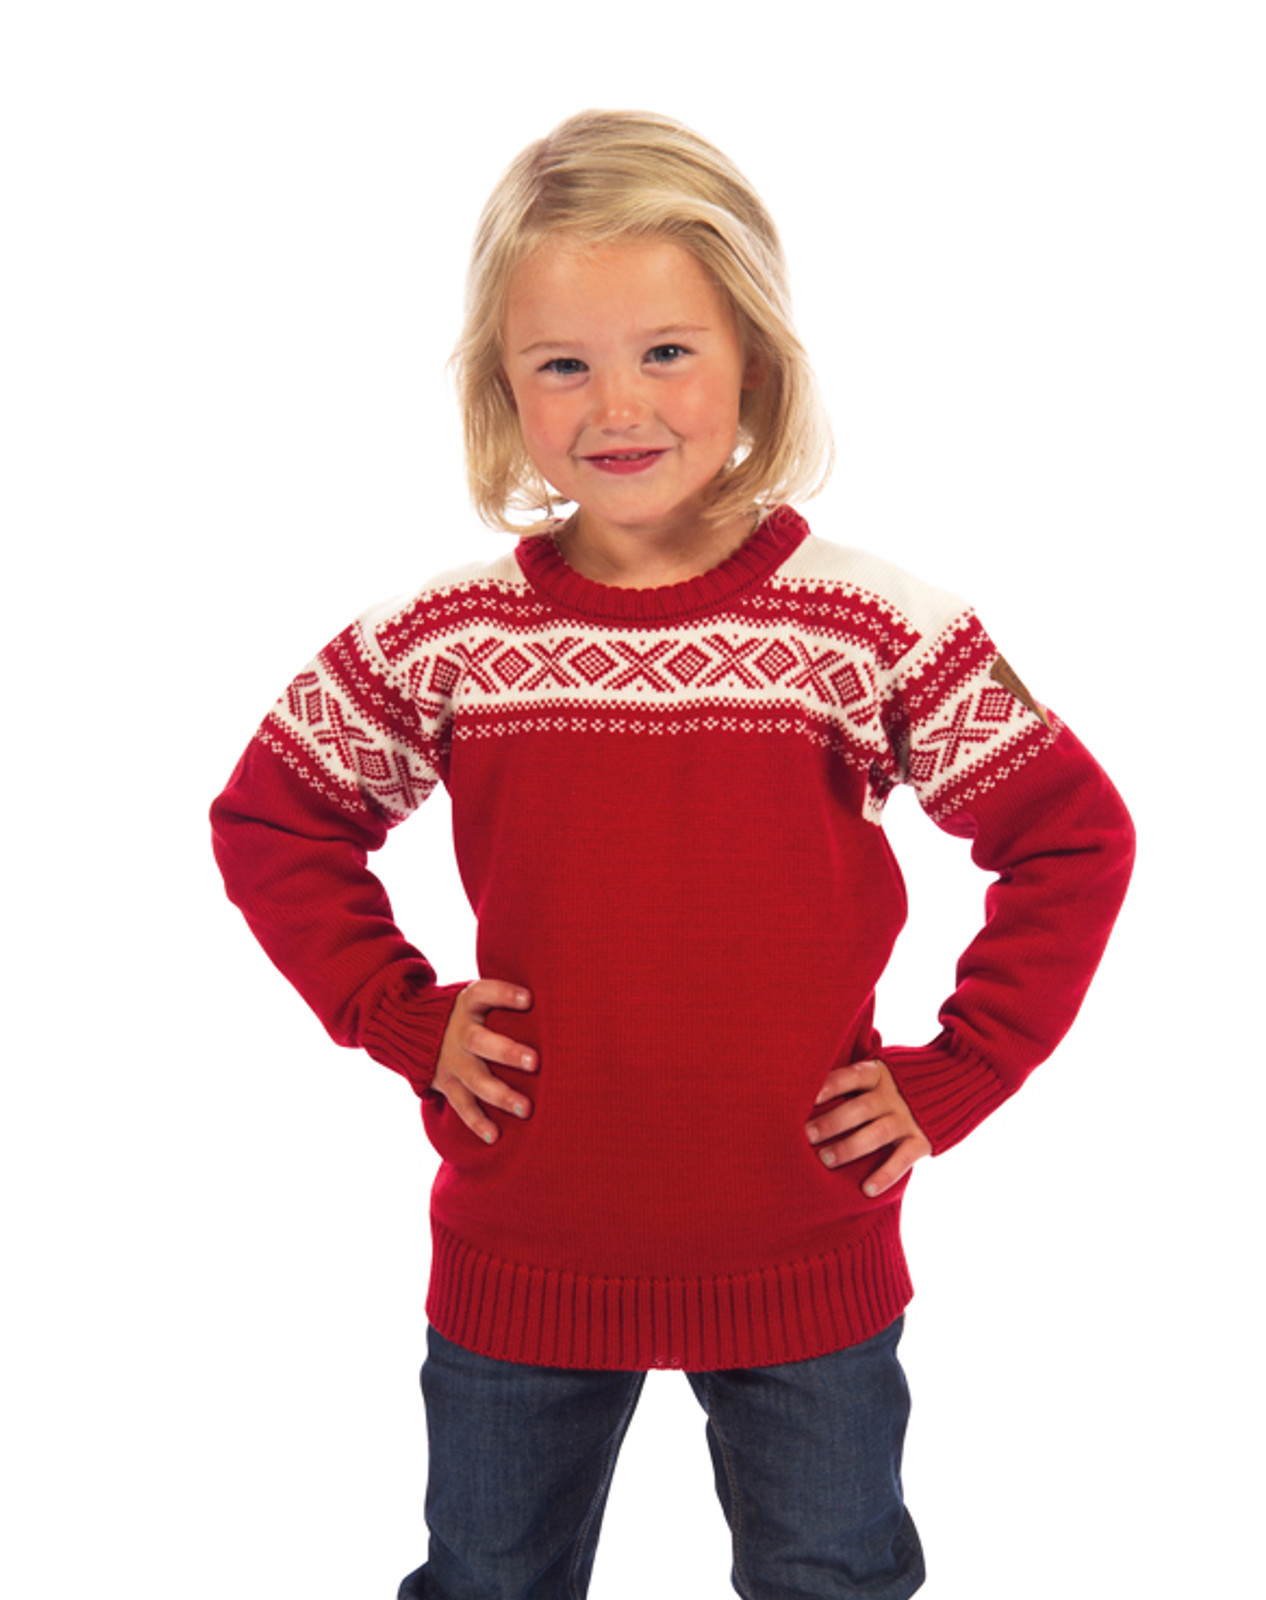 Child modeling the Dale of Norway, Cortina kids sweater in Raspberry/Off White, 92991-B